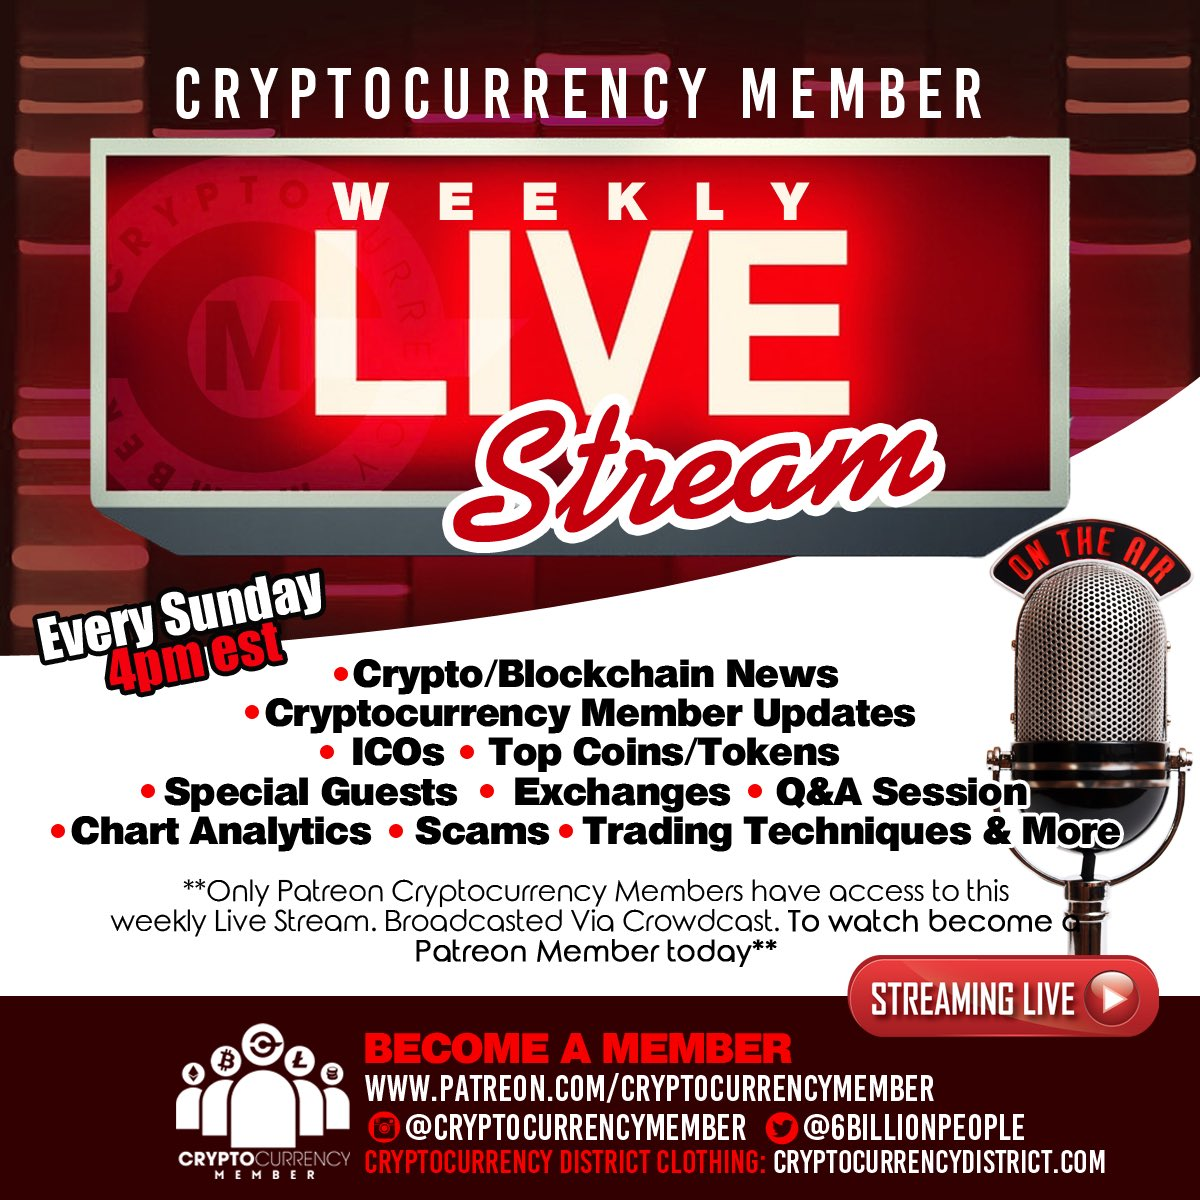 Live Stream Today at 4pm EST | If your into Cryptocurrency & Blockchain technology tune in! Today we are going over coin/token charts, portfolios and Q&As from people tuned in - Watch Live -  | (RETWhttps://t.co/XcYvgAT51REET)